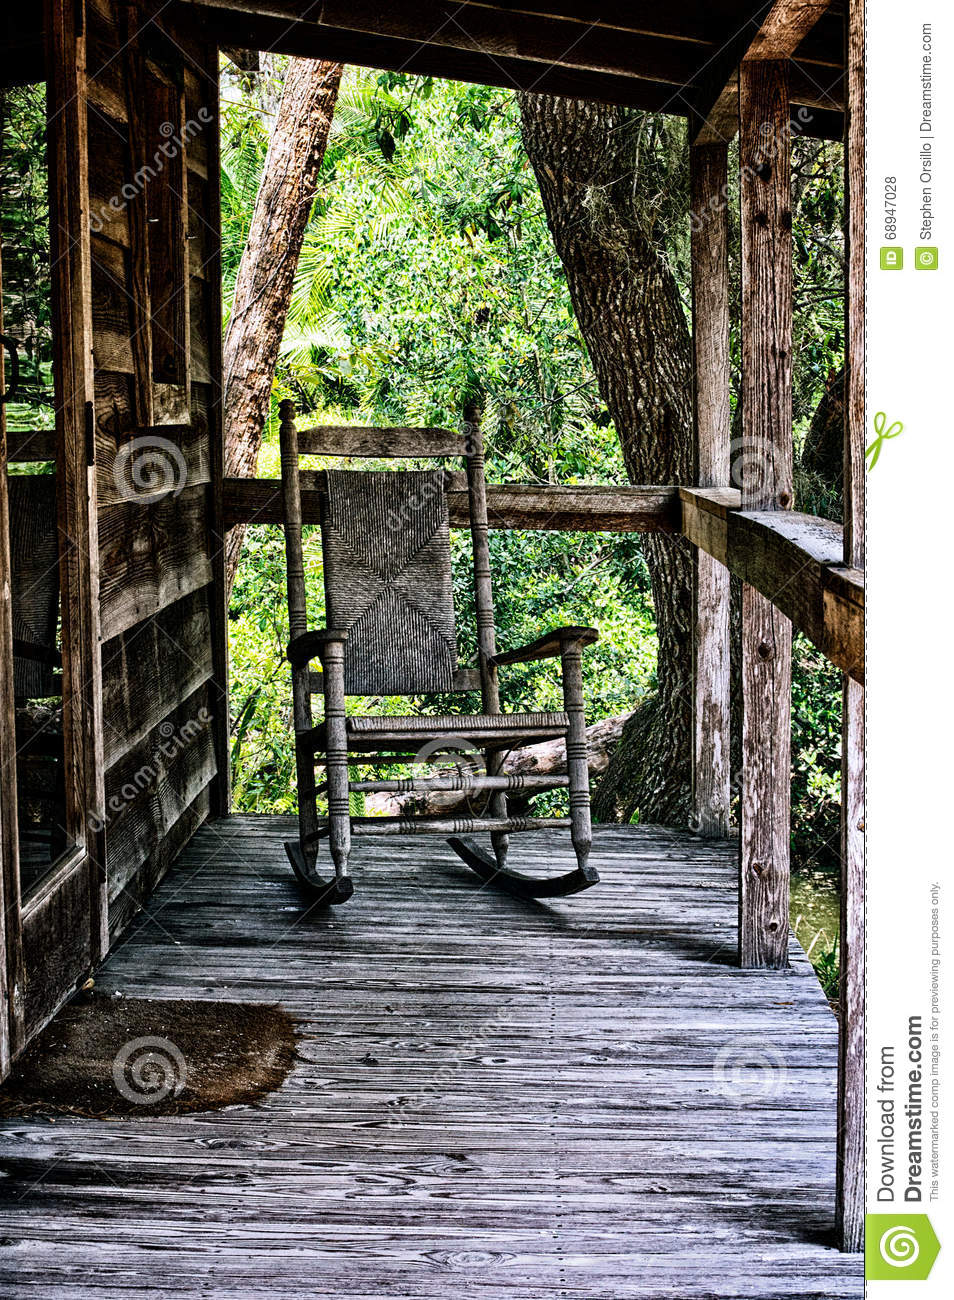 Old Rocking Chair On Porch Of House